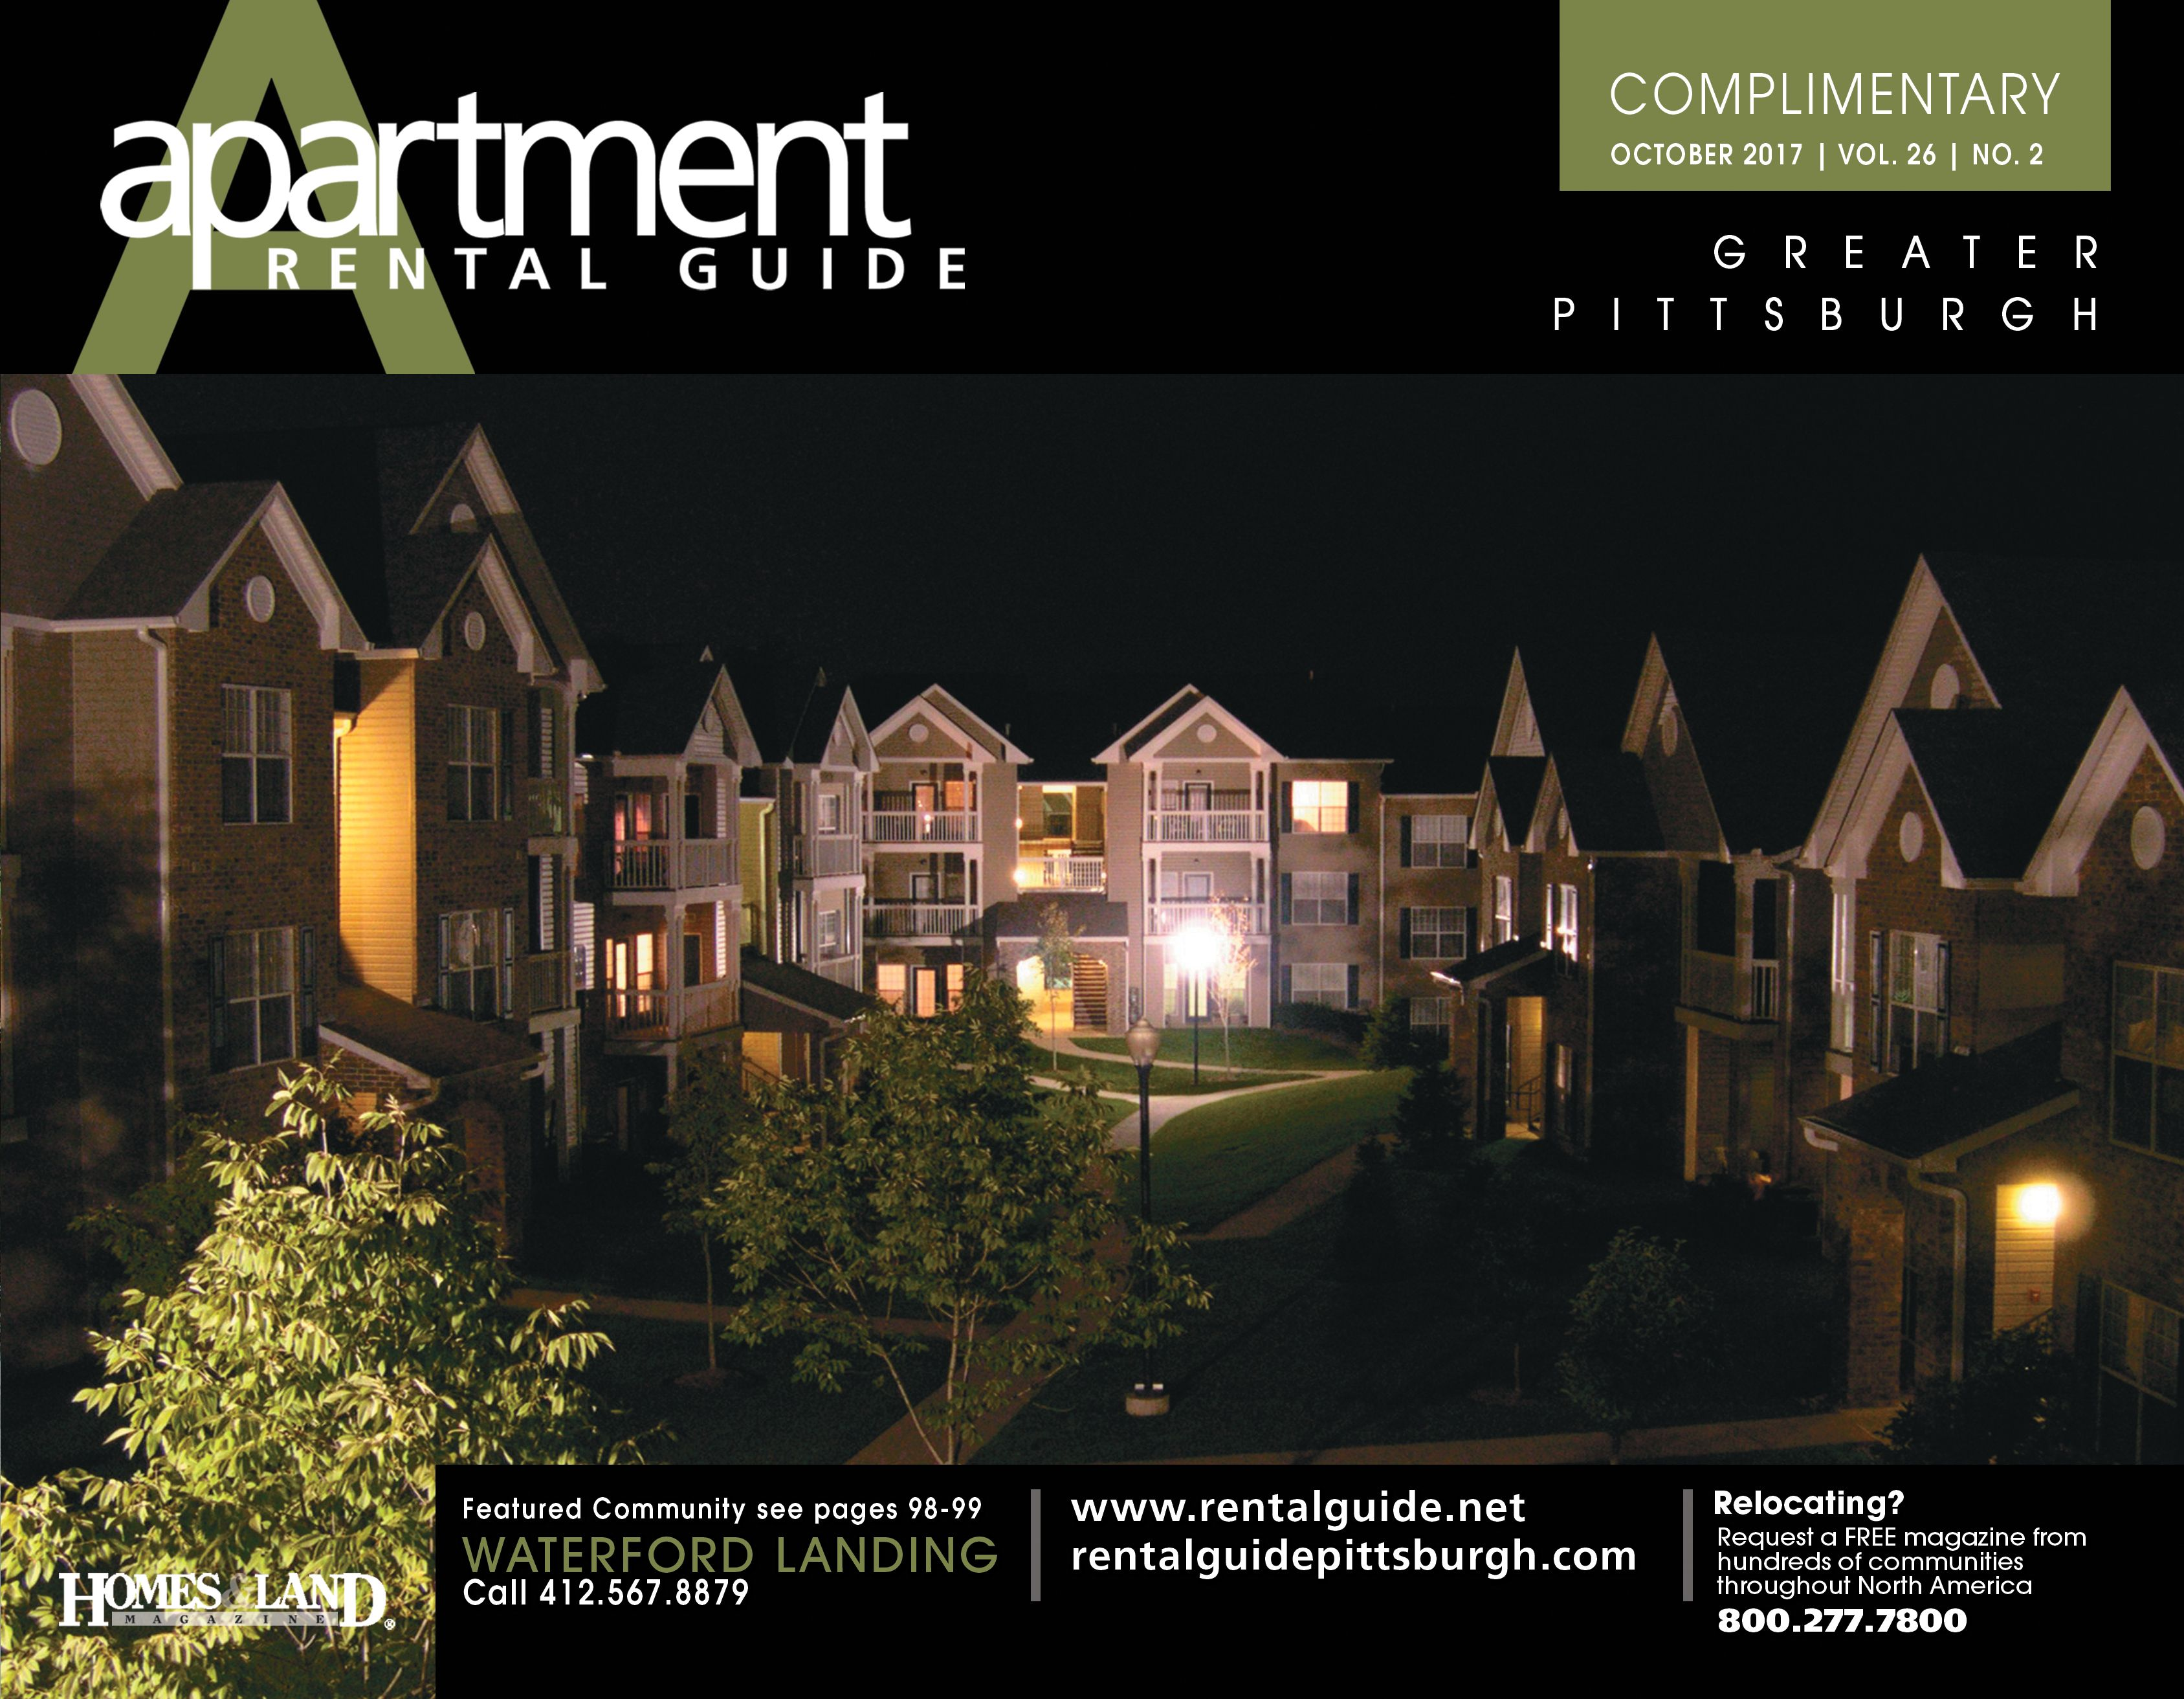 We are proud to showcase Waterford Landing on the October Cover